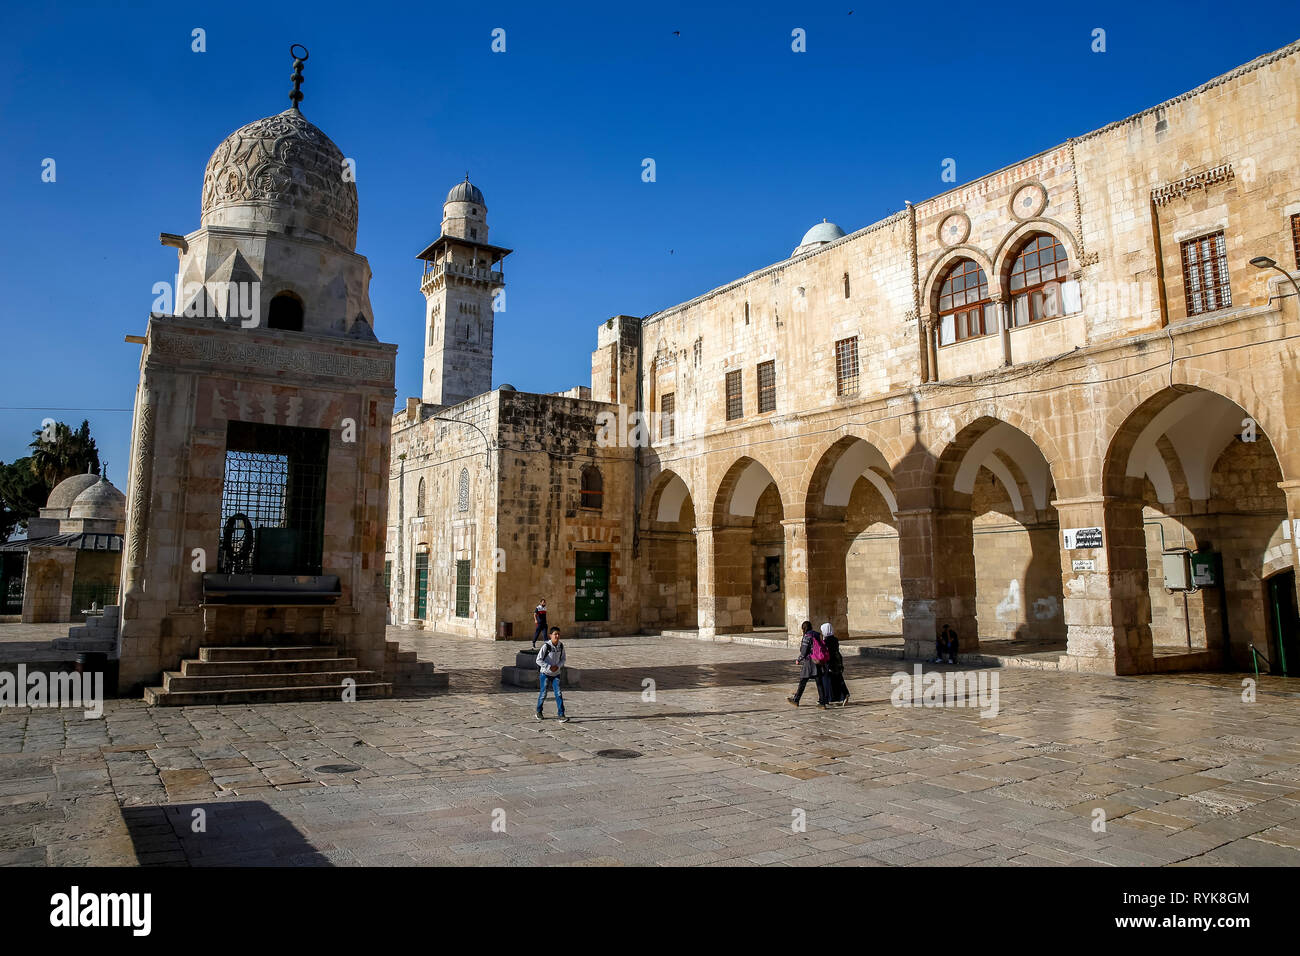 Shrines on the Haram esh-Sharif (Al Aqsa compound, Temple Mount), Jerusalem, Israel. - Stock Image